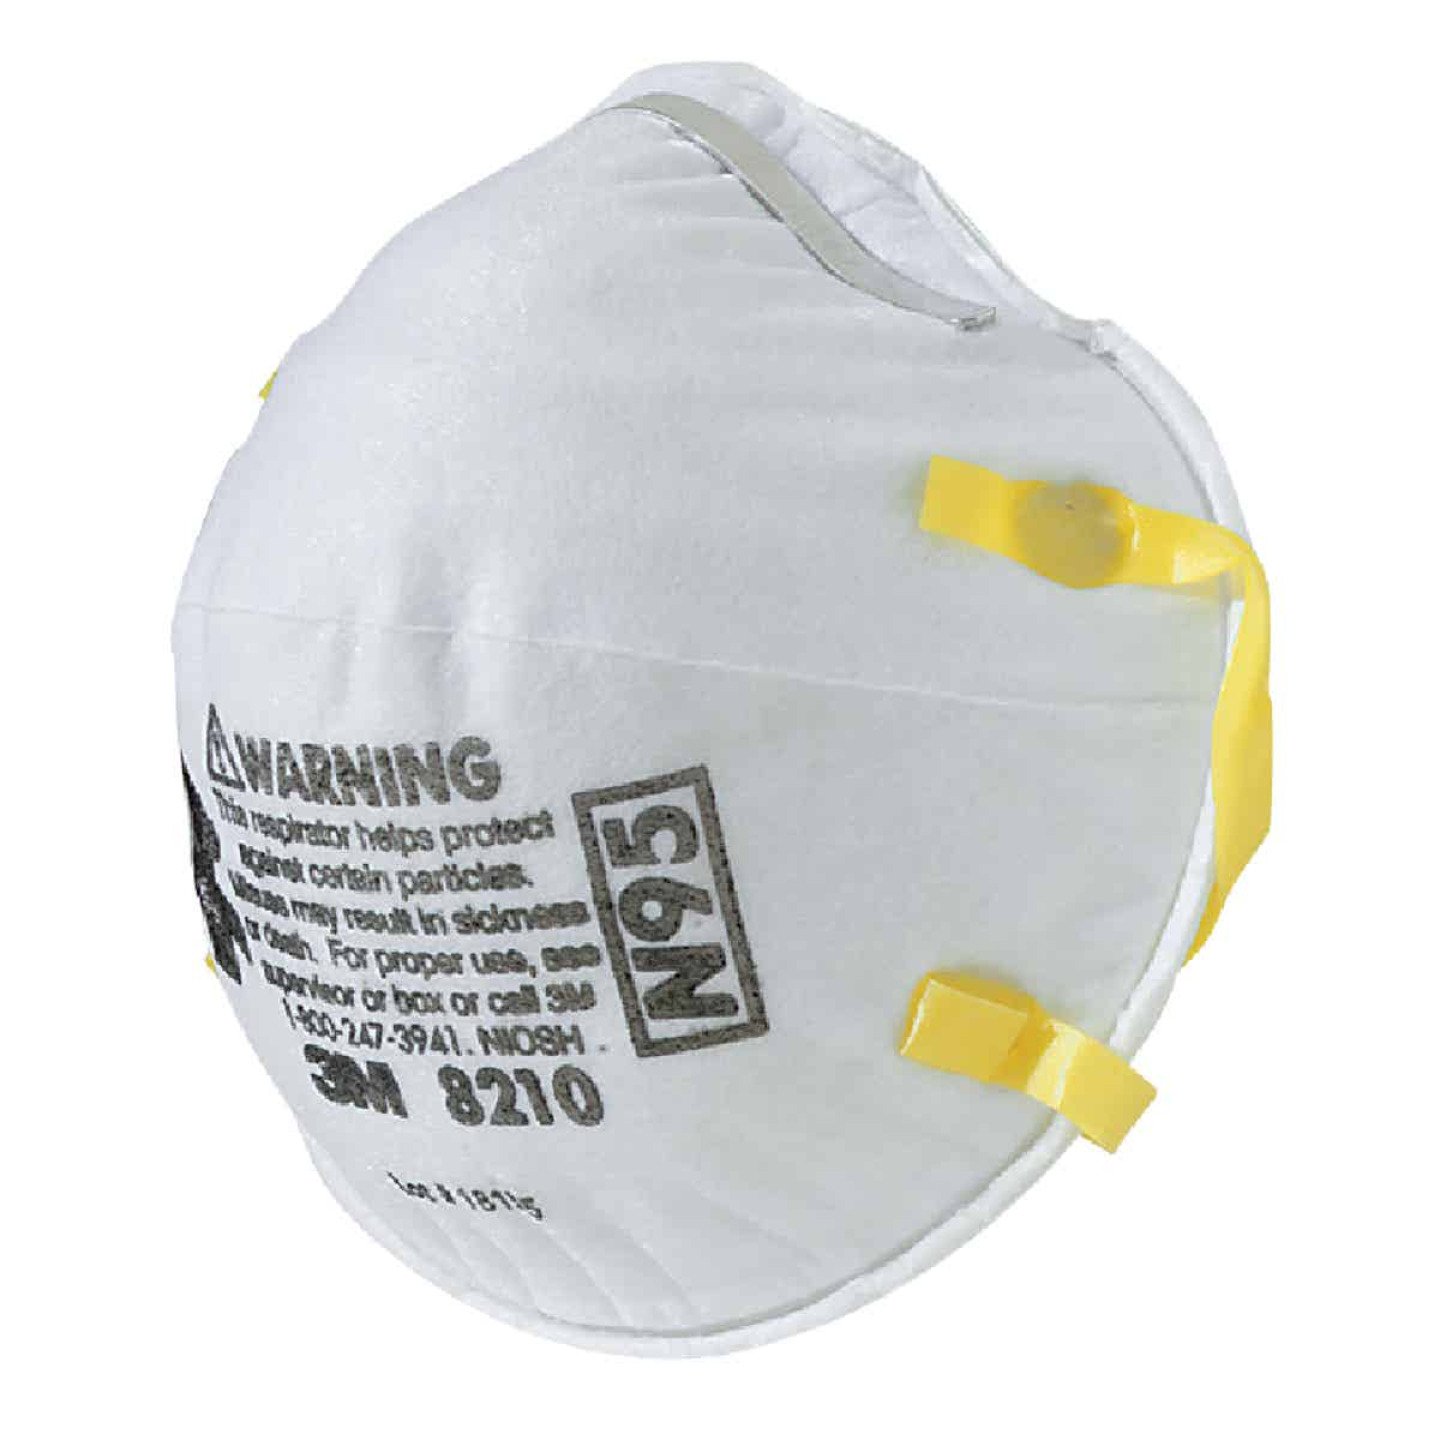 3M N95 Woodworking, Sanding and Fiberglass Respirator (2-Pack) Image 1